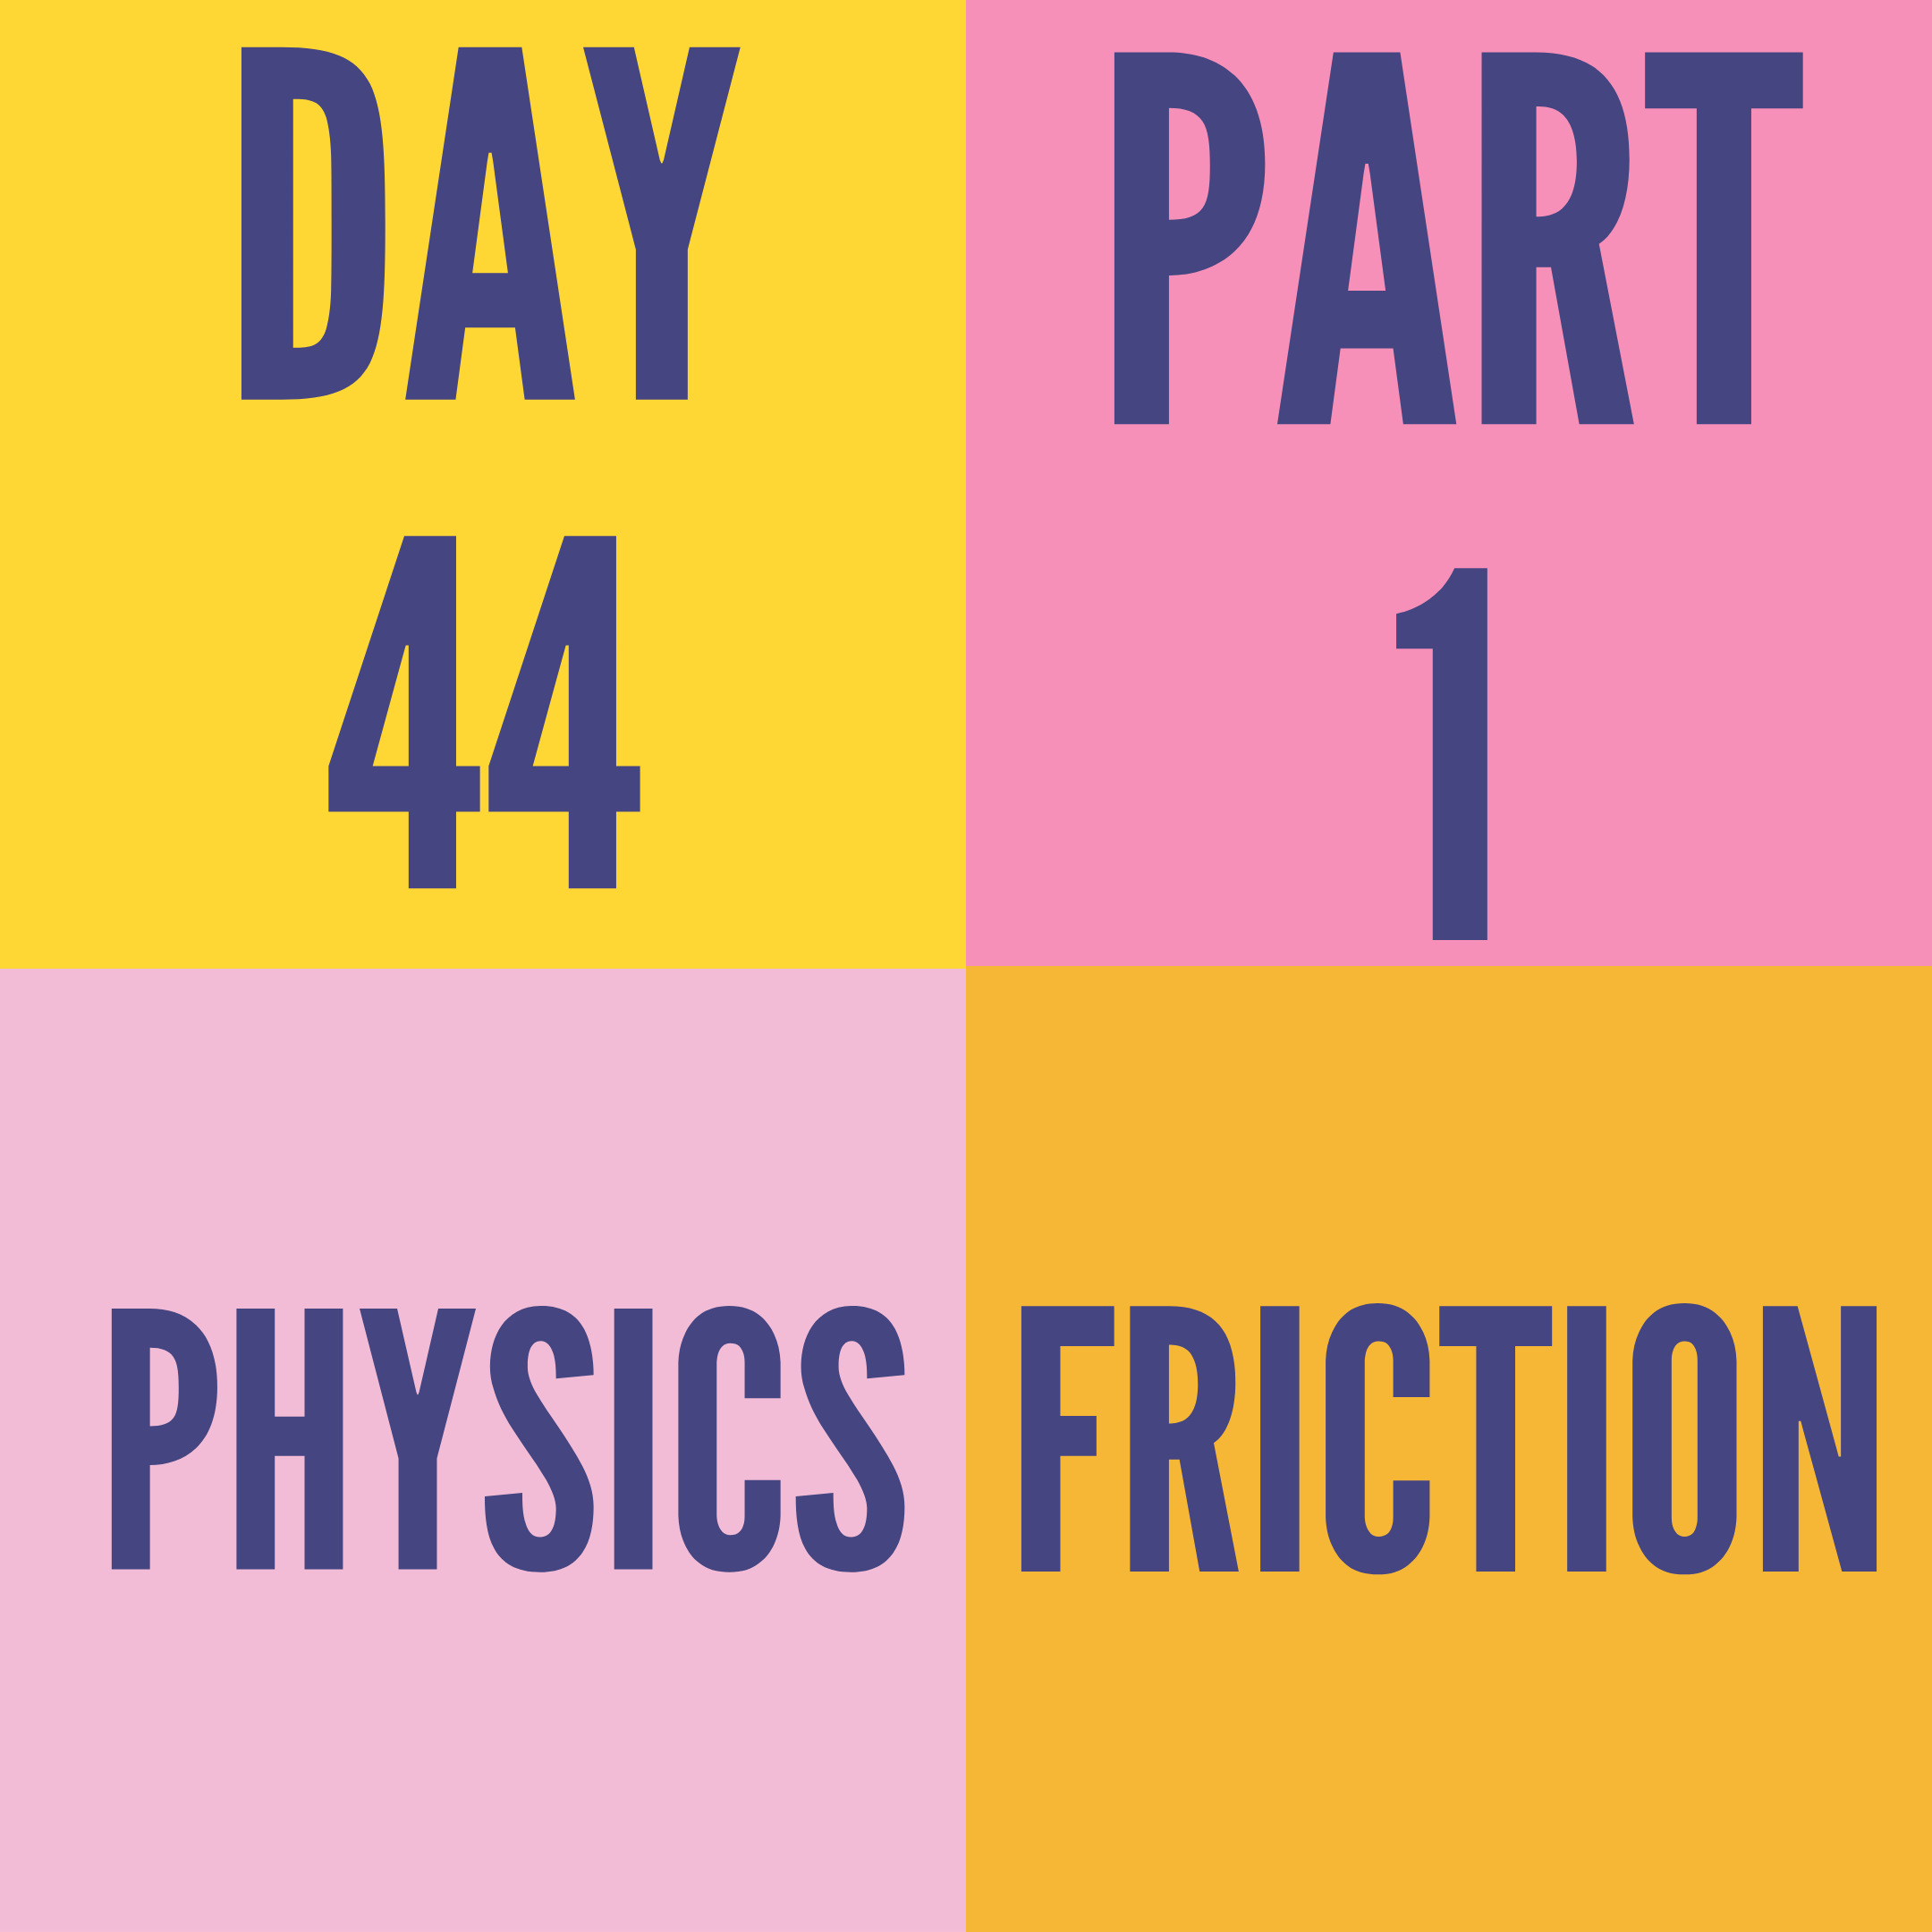 DAY-44 PART-1 FRICTION